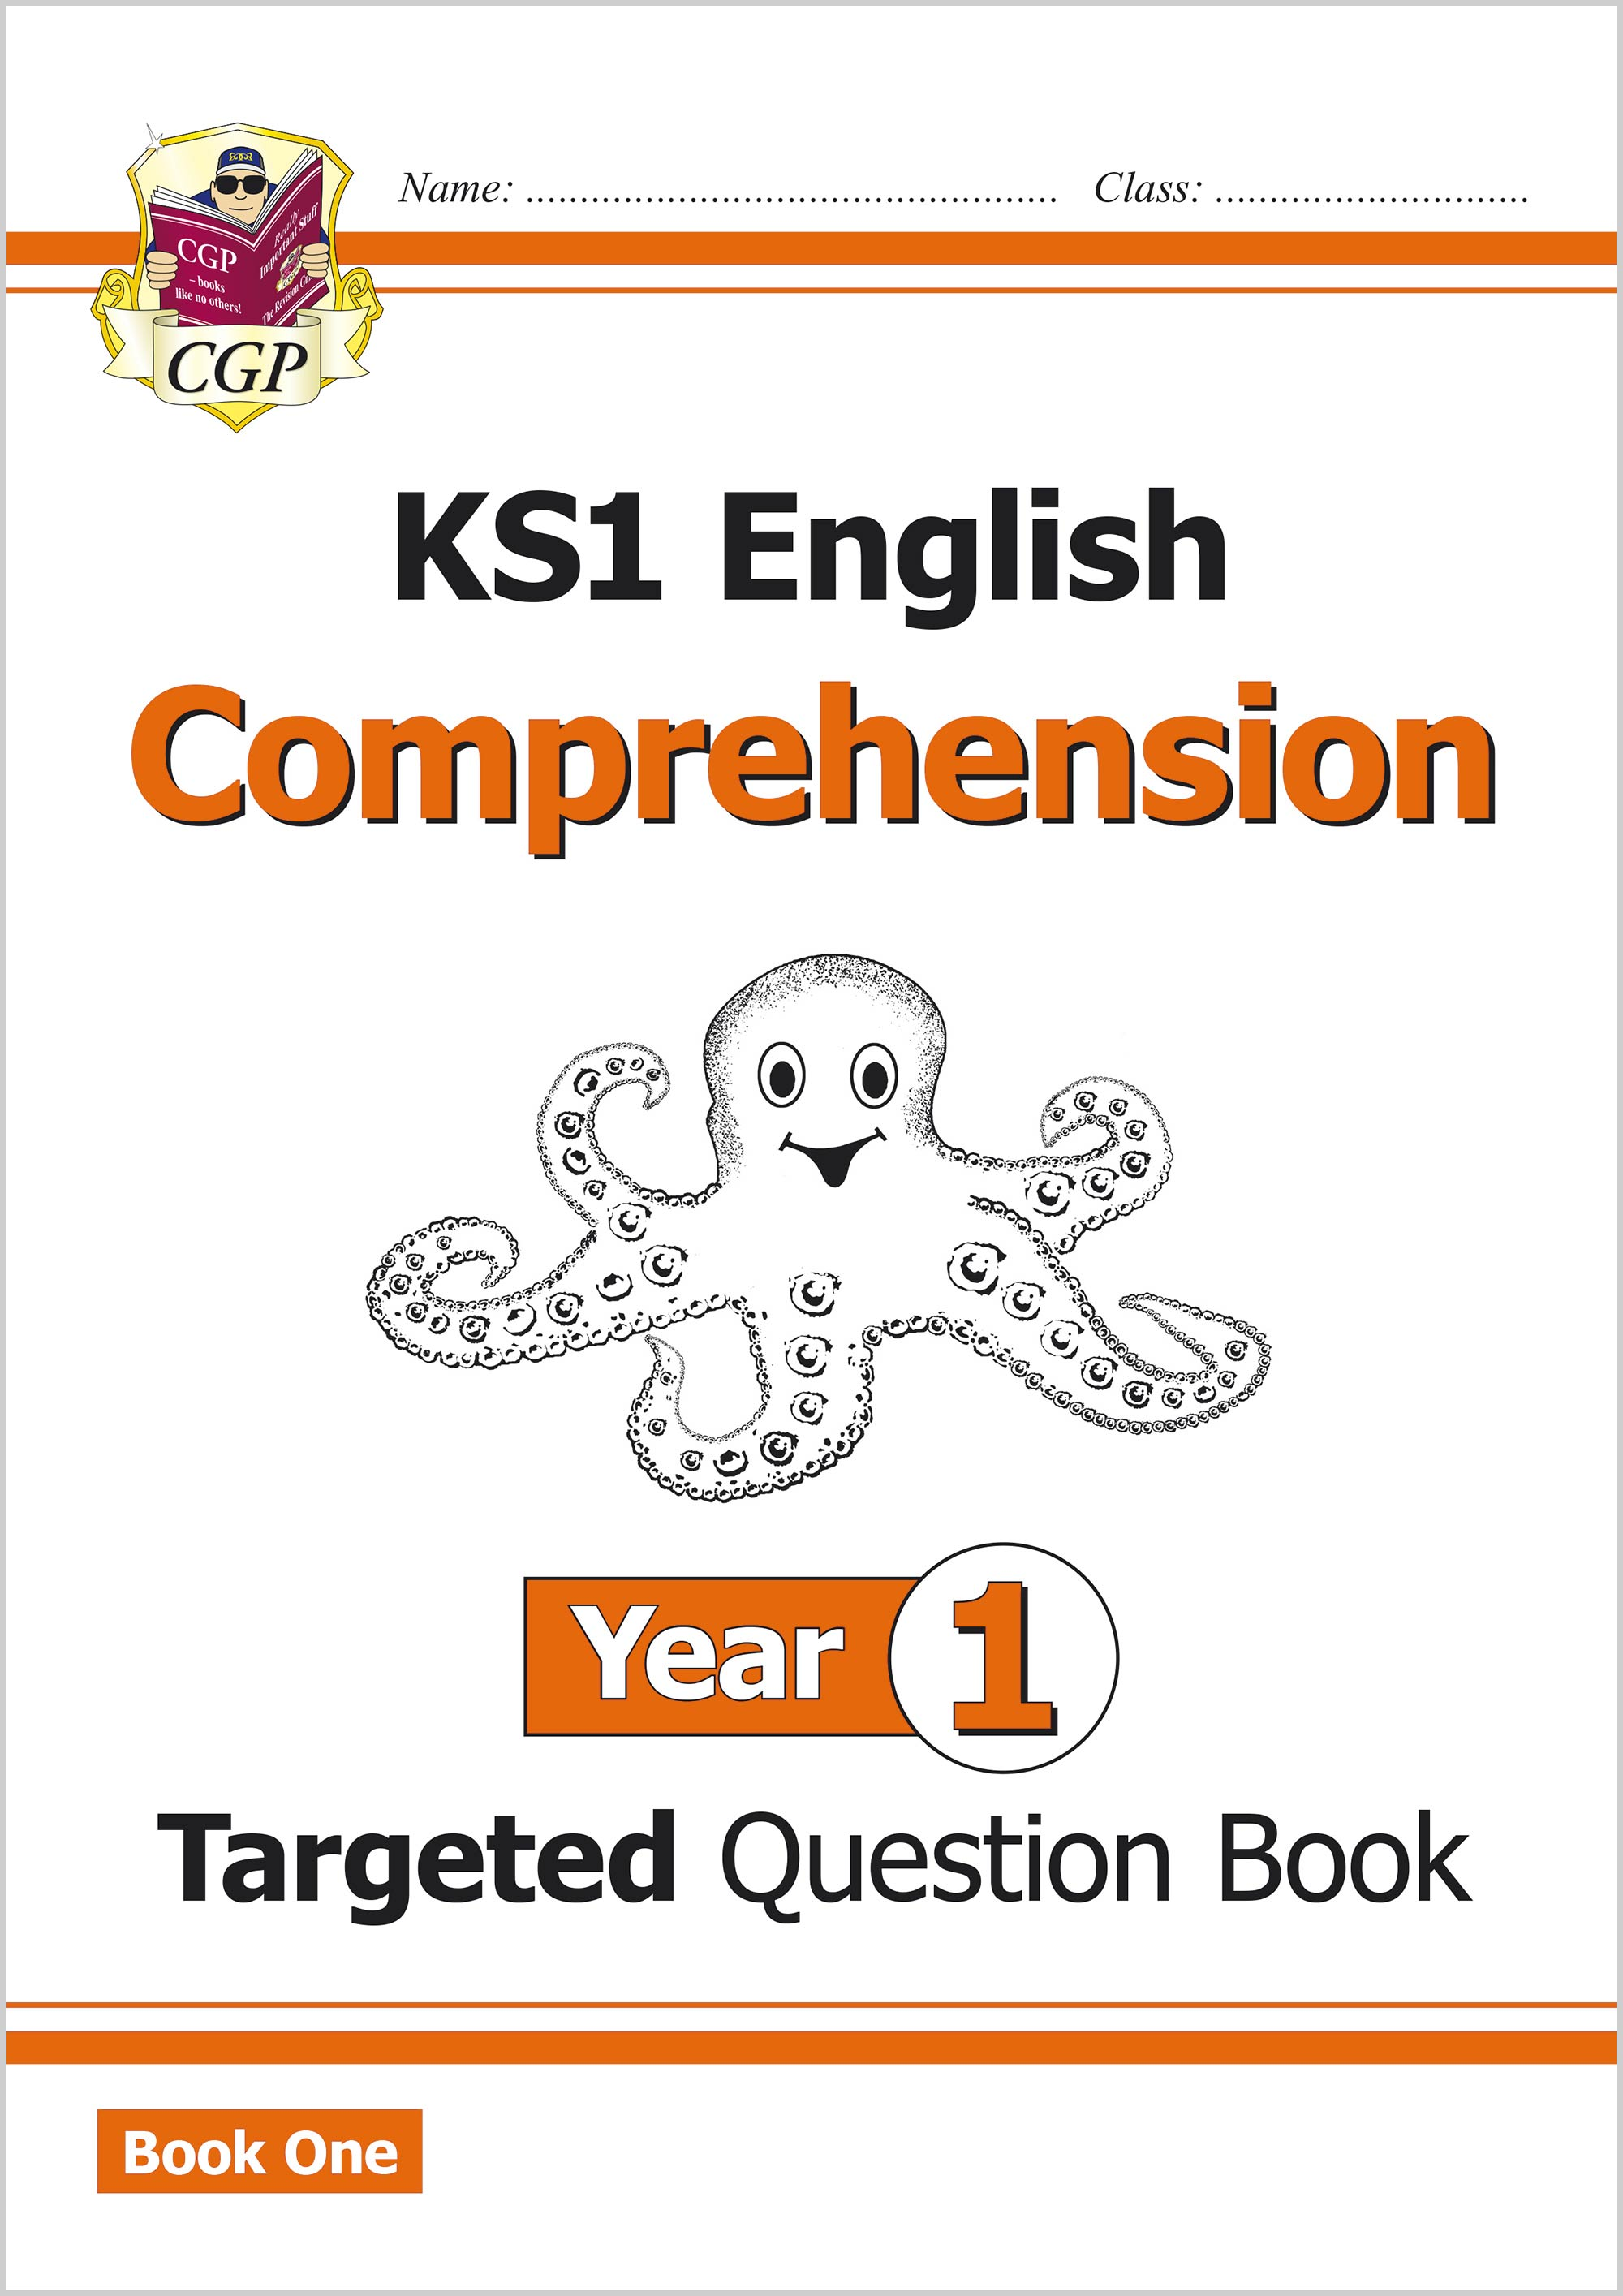 E1CW11 - KS1 English Targeted Question Book: Comprehension - Year 1